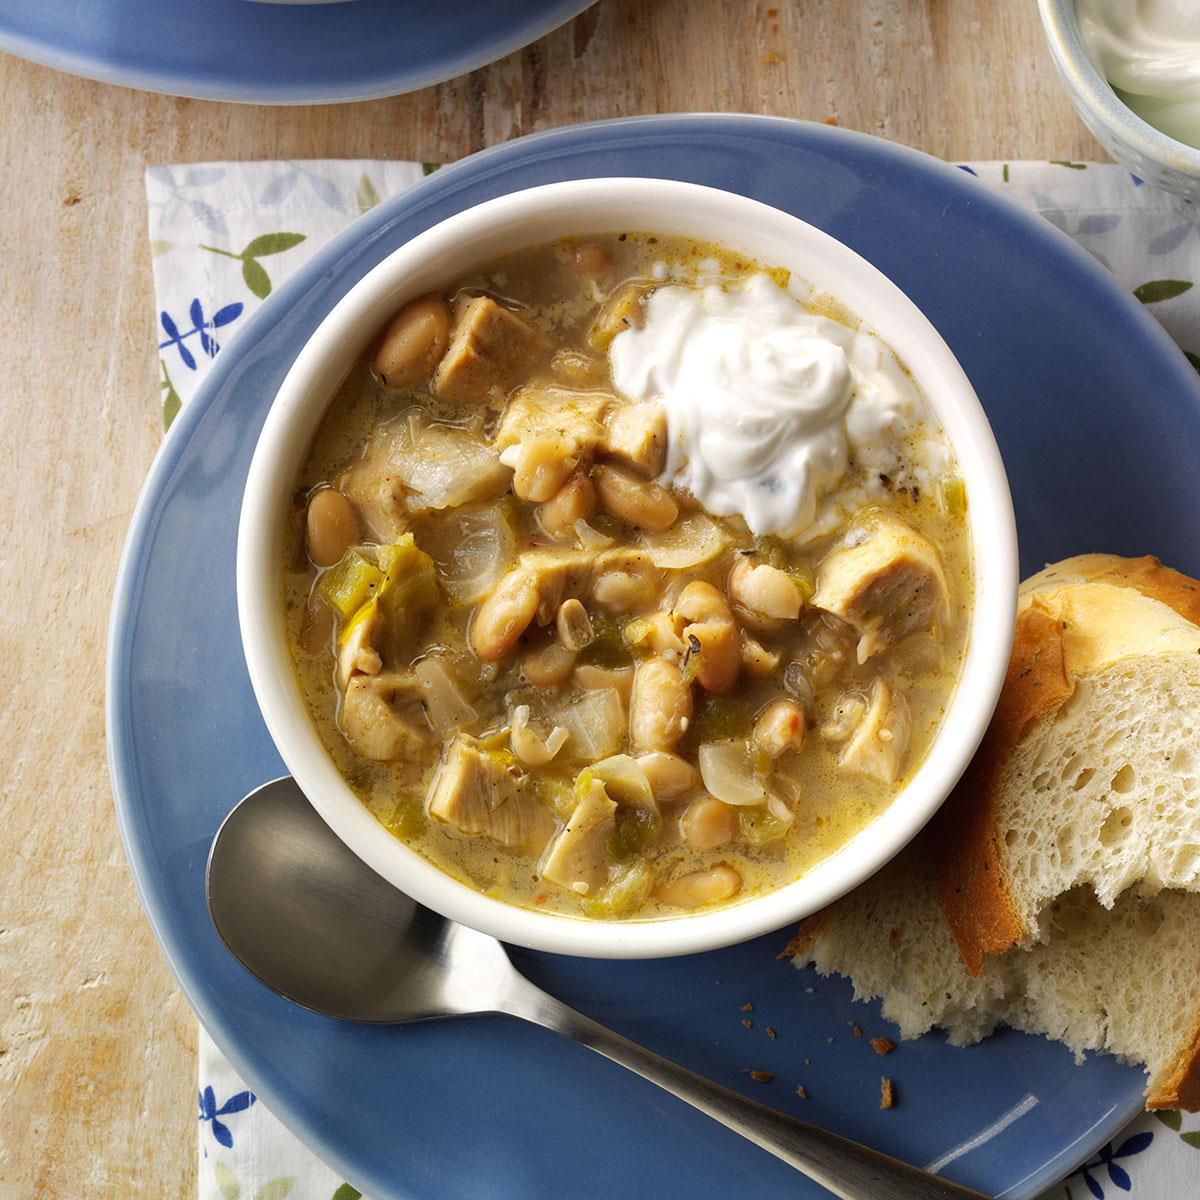 Spicy White Chili Recipe How To Make It Taste Of Home